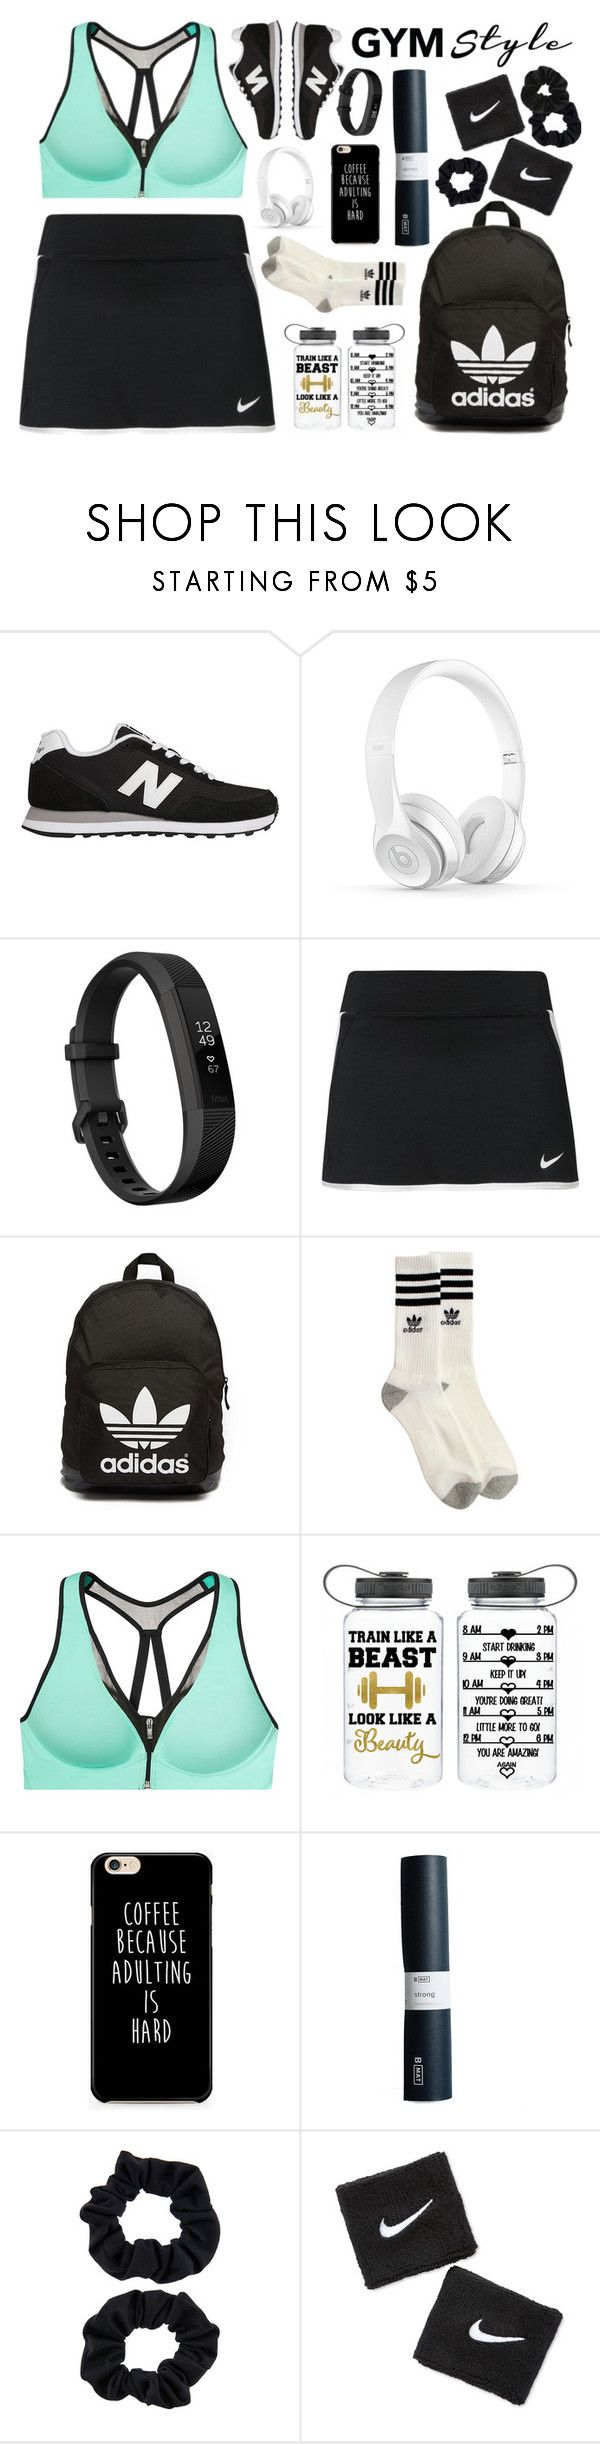 """""""Untitled #855"""" by redx1202 ❤ liked on Polyvore featuring New Balance, Fitbit, NIKE, adidas Originals, adidas, Victoria's Secret, Accessorize and Miss Selfridge"""